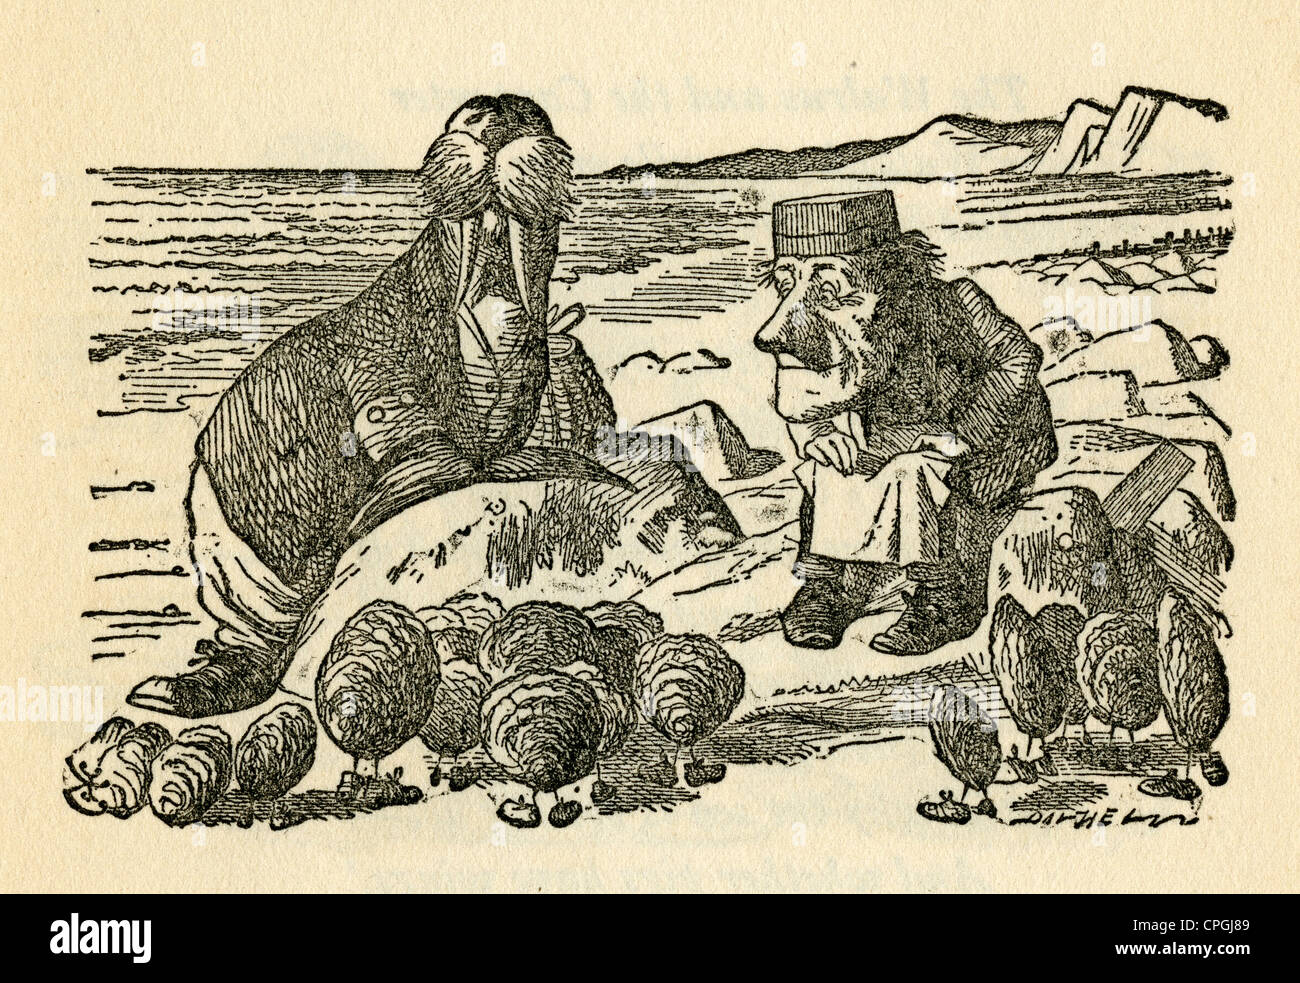 Circa 1910s edition of Alice in Wonderland. The Walrus and the Carpenter by John Tenniel. - Stock Image